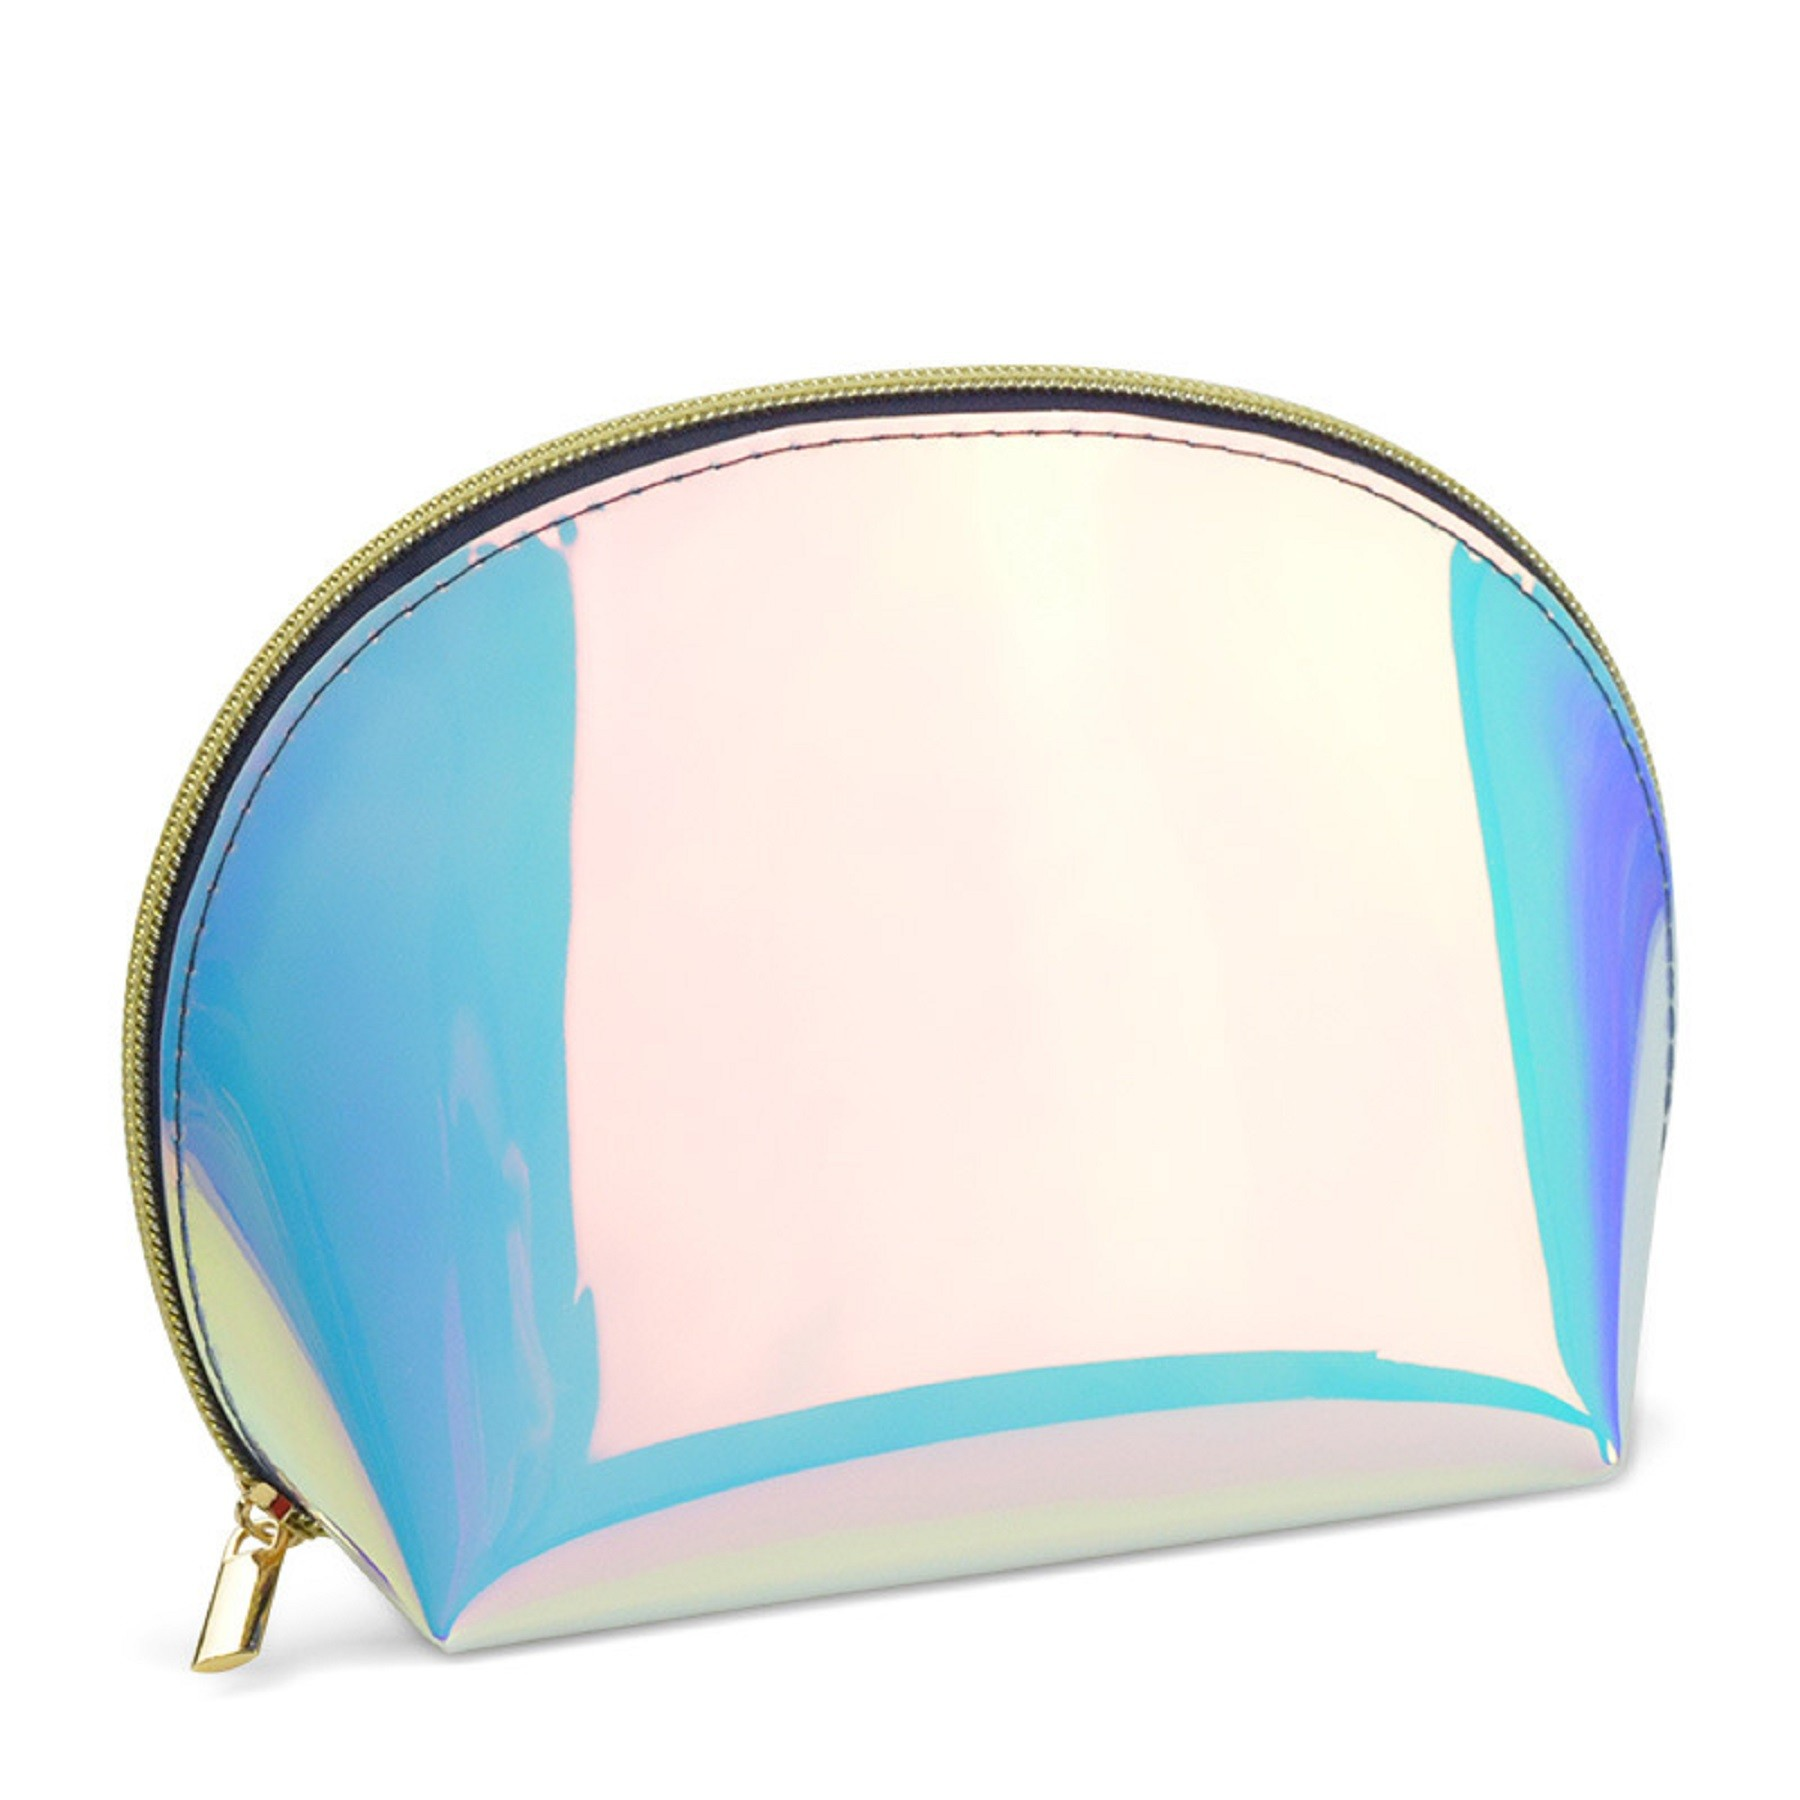 PVC holographic Cosmetic Bag